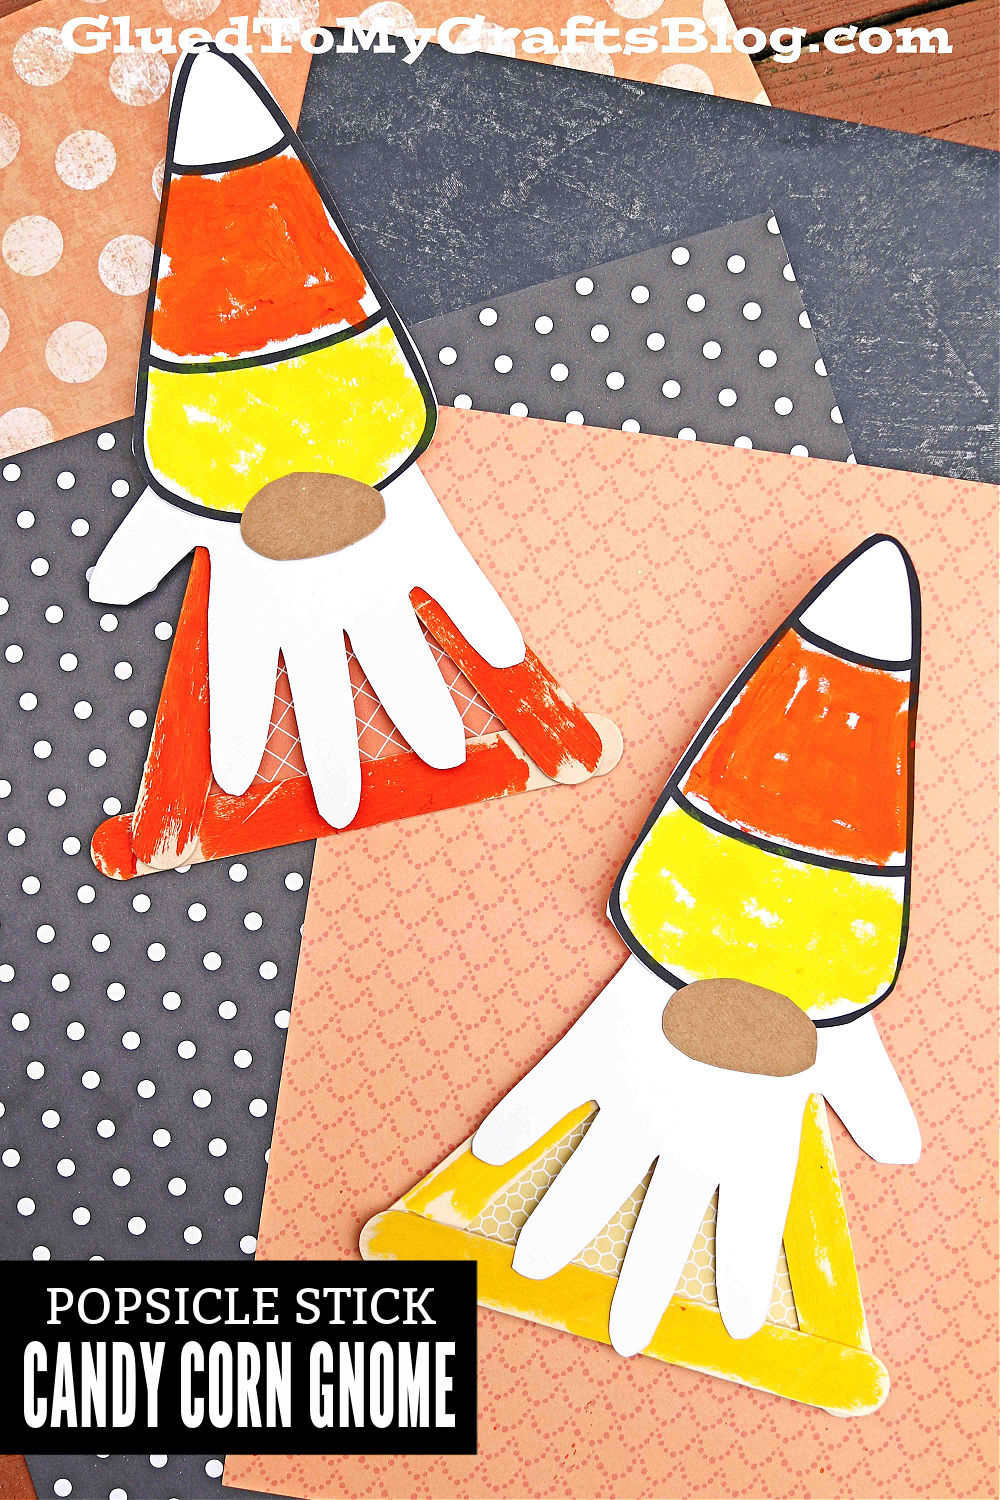 Candy Corn Gnome - Popsicle Stick Craft Idea For Halloween